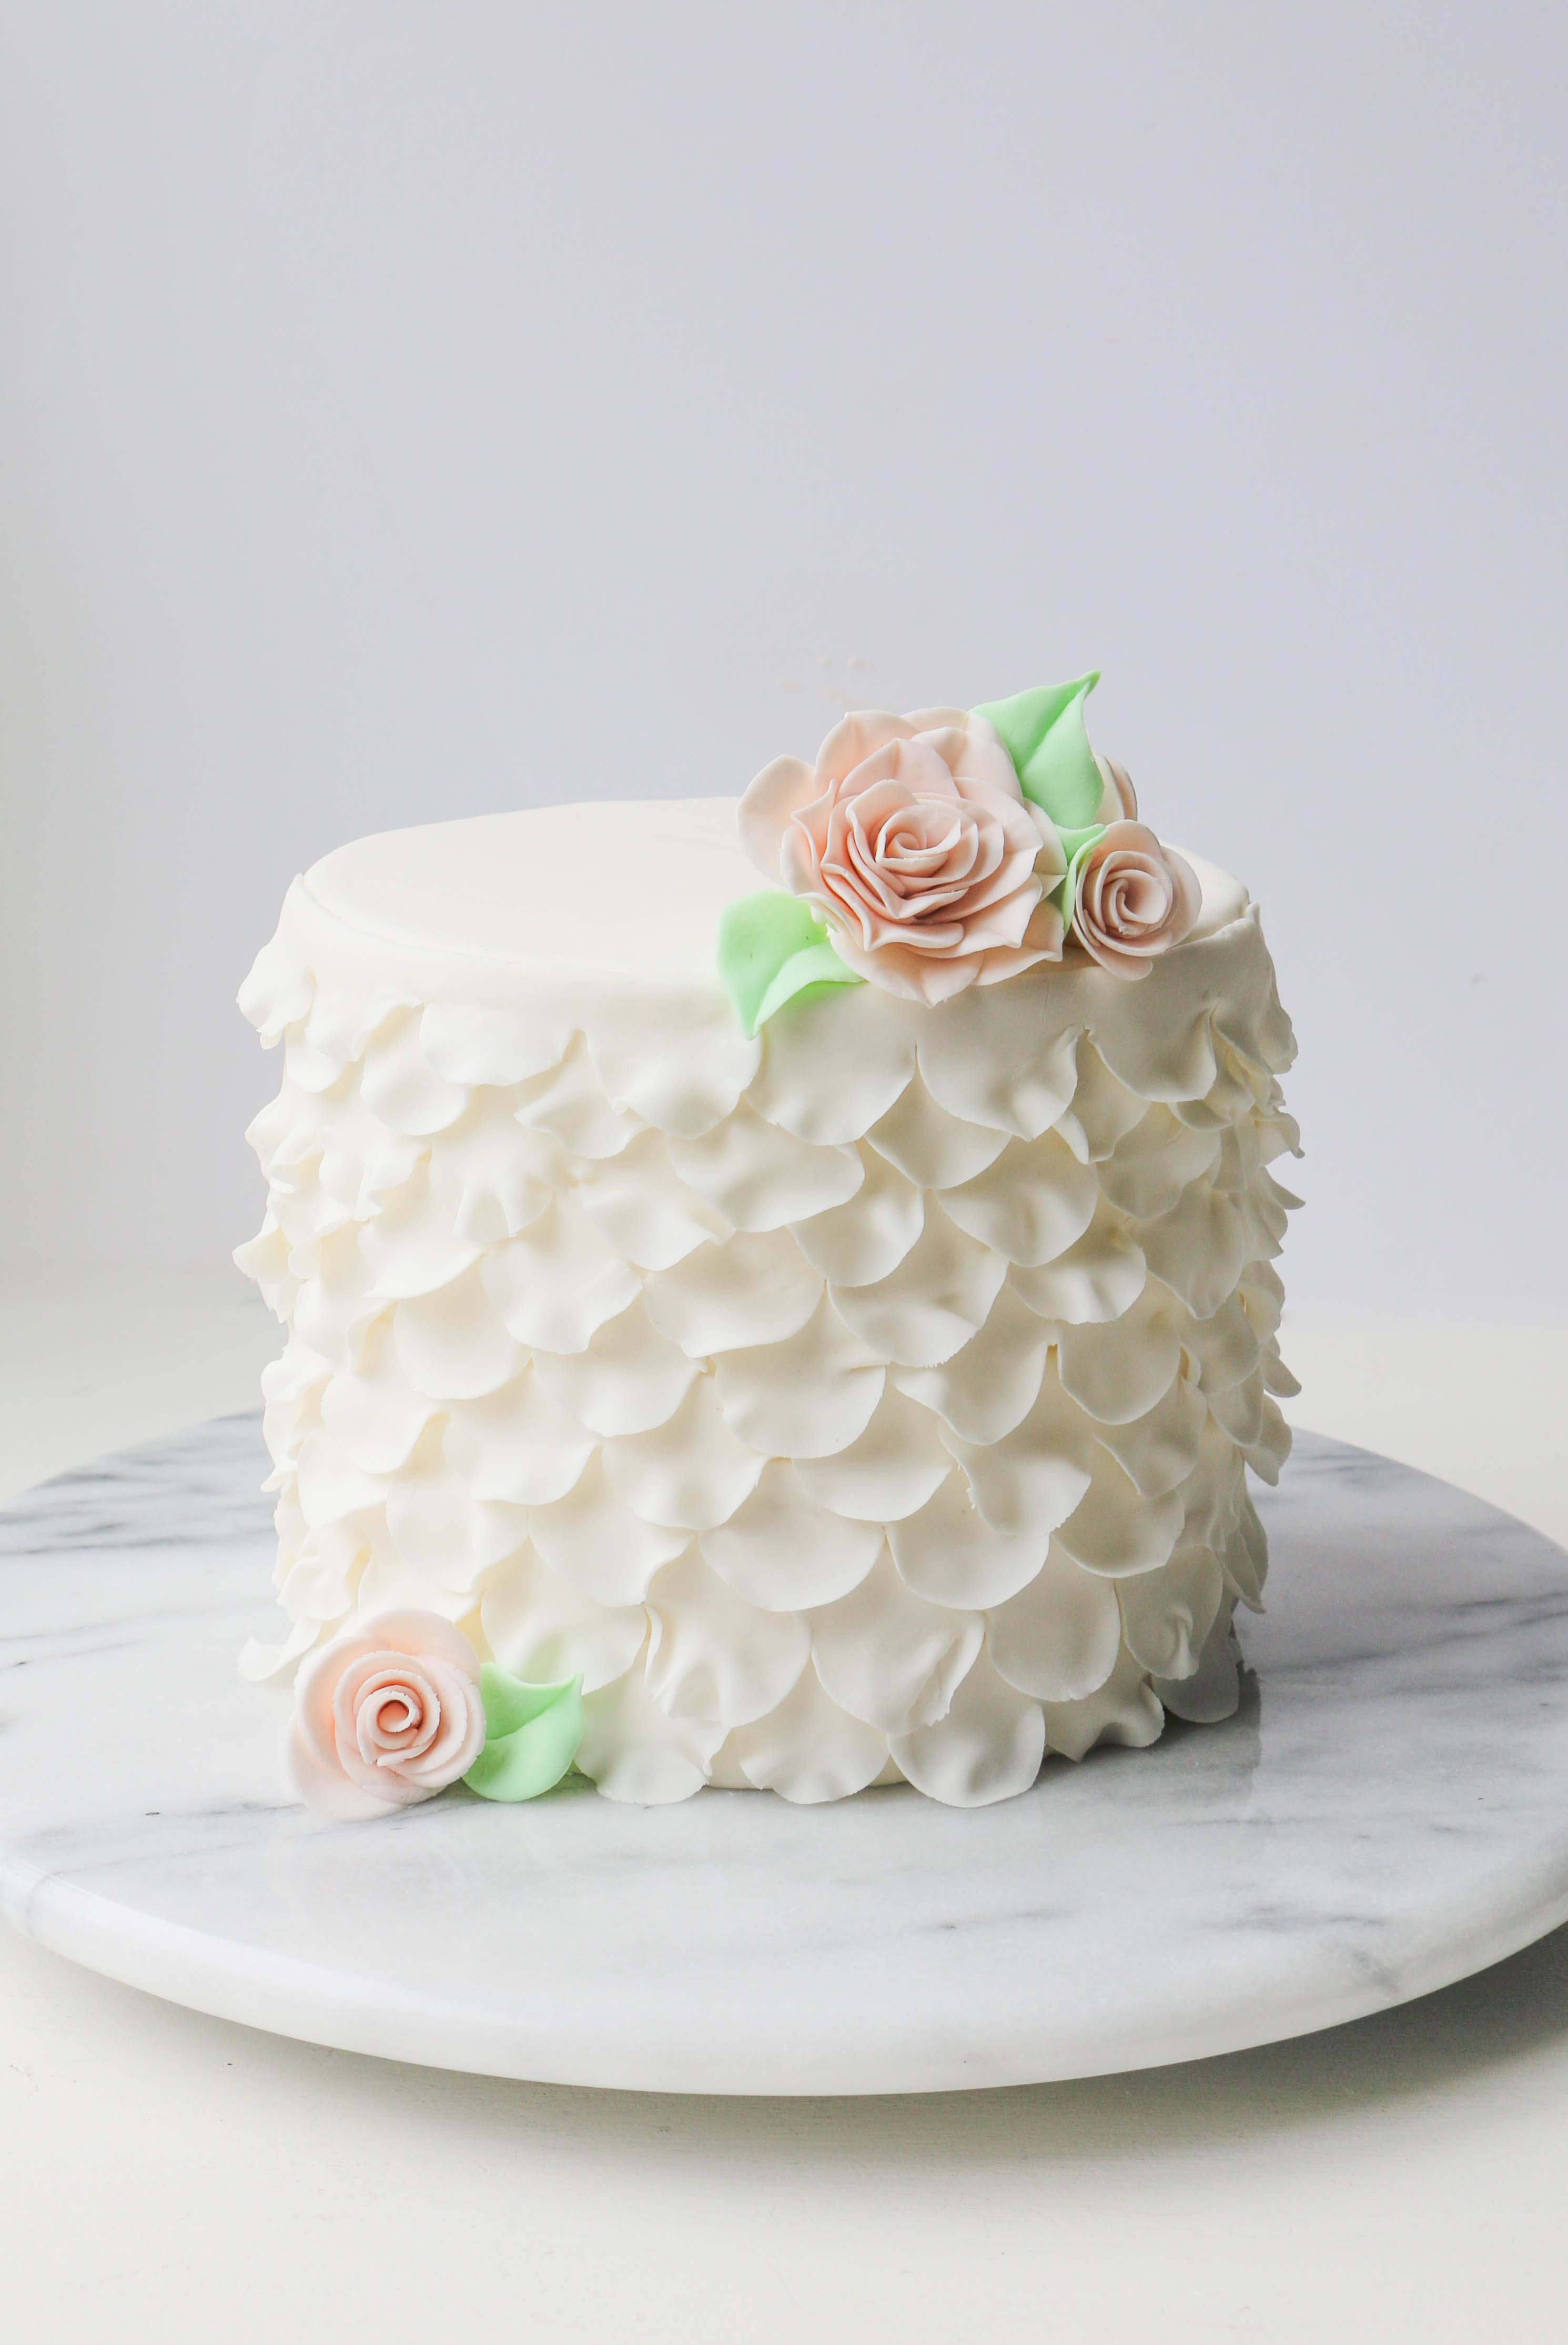 Ruffles & Roses Cake Made with the Easiest Rose Ever Sugar Flower Cutter | Erin Gardner | Craftsy